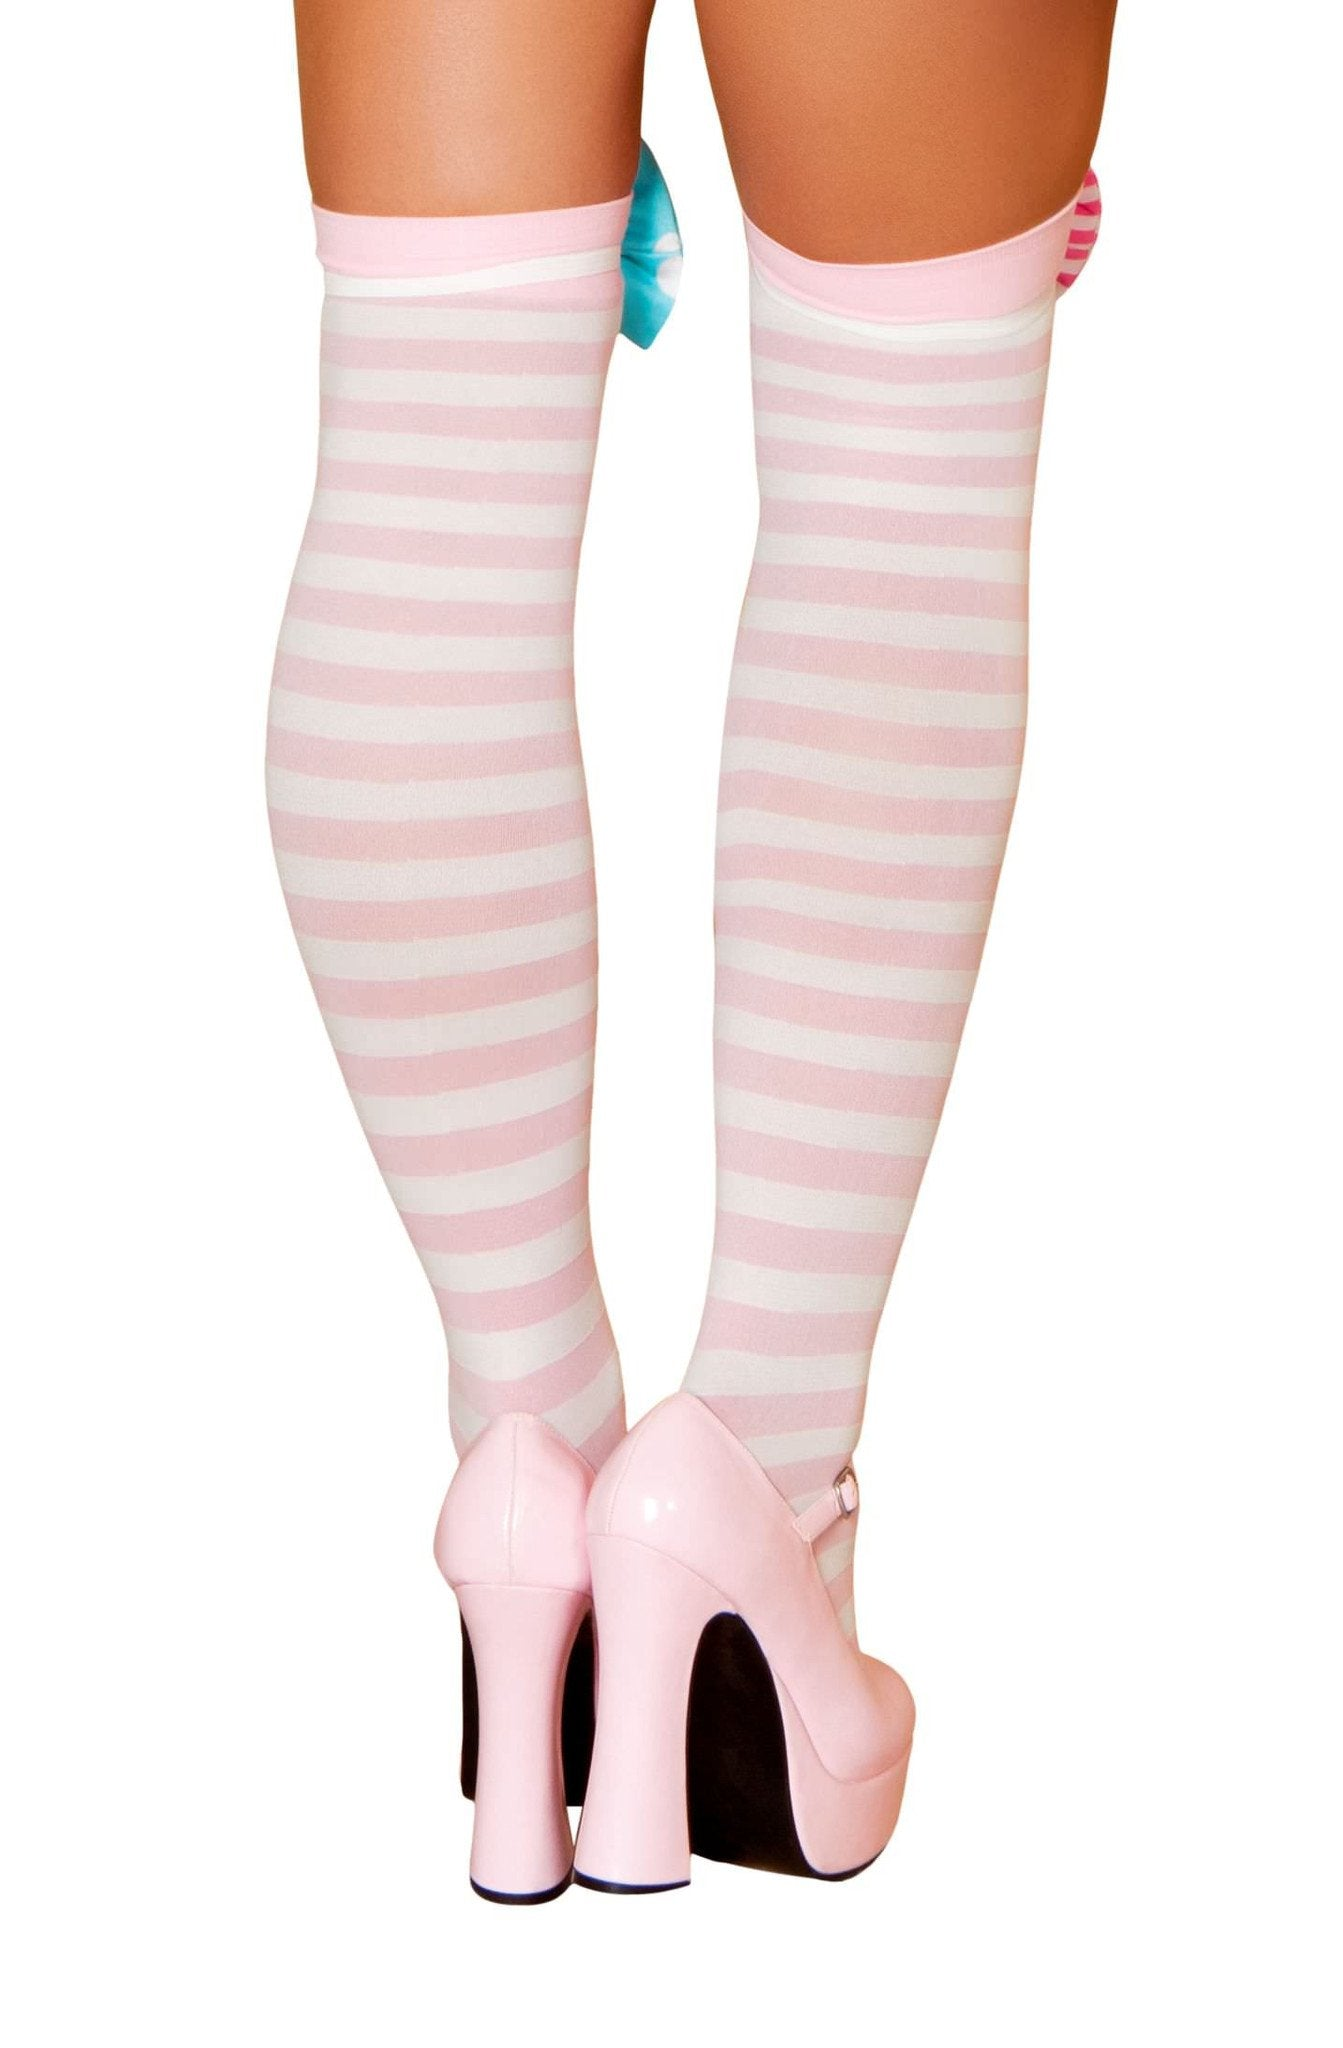 ST4421 Stockings